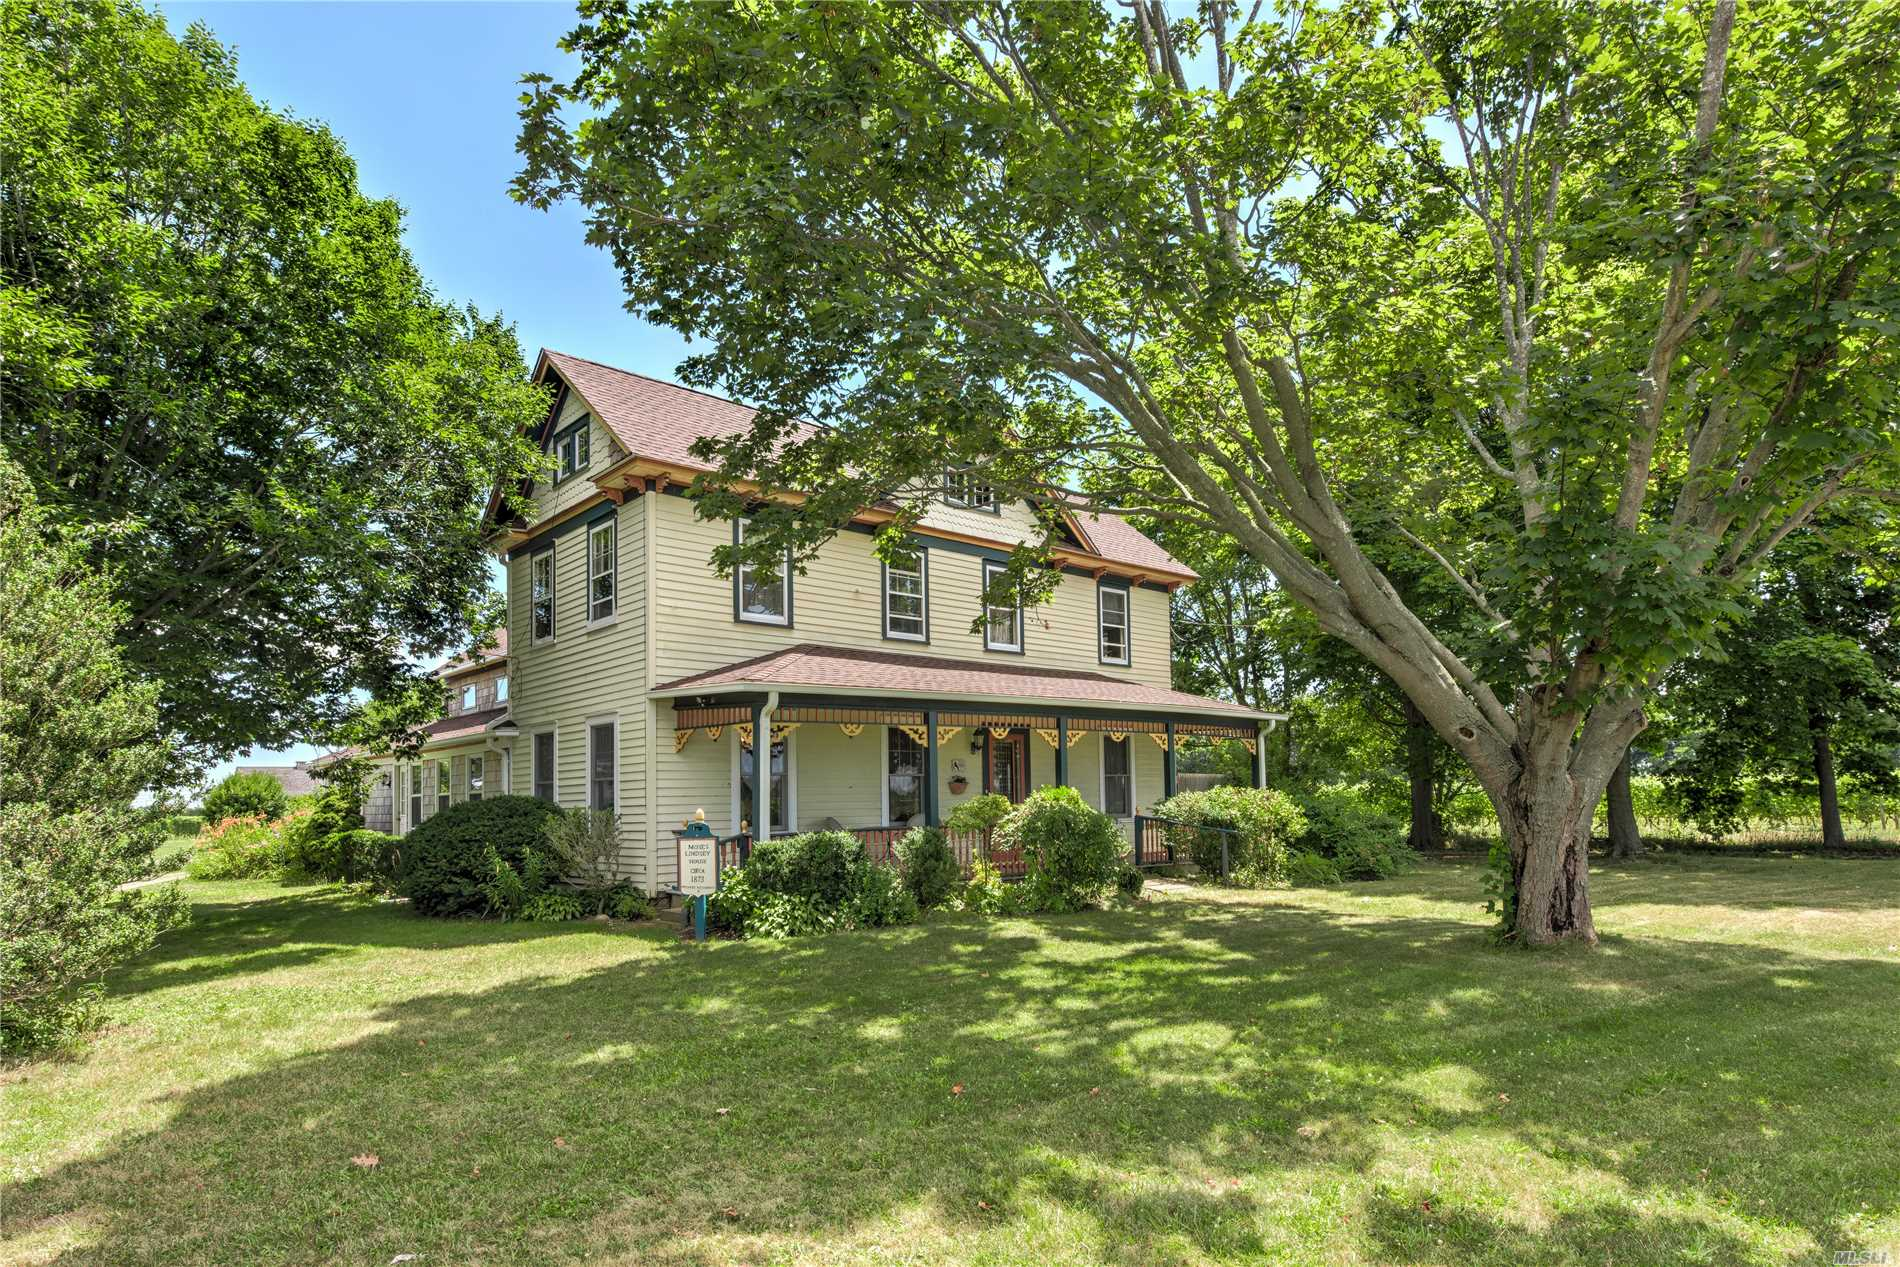 Circa 1873 Moses Lindsay House. Rare Opportunity To Own A Real Piece Of North Fork History. Fabulous Exposure, Yet Privately Surrounded By 35 Acres Of Stunning Vineyard Views On All 3 Sides. Lovingly Maintained, Charm Abounds, Acre Of Land, Vintage Outbuildings, Majestic Old Trees. Spacious Rooms To Entertain, Many New Costly Upgrades, Adorable Granny Attic, Central Air Comfort. Pamper Lucky Dinner Guests Or Host Family Events Under Twinkly Evening Lights Along The Vines. Romance Is In The Air.